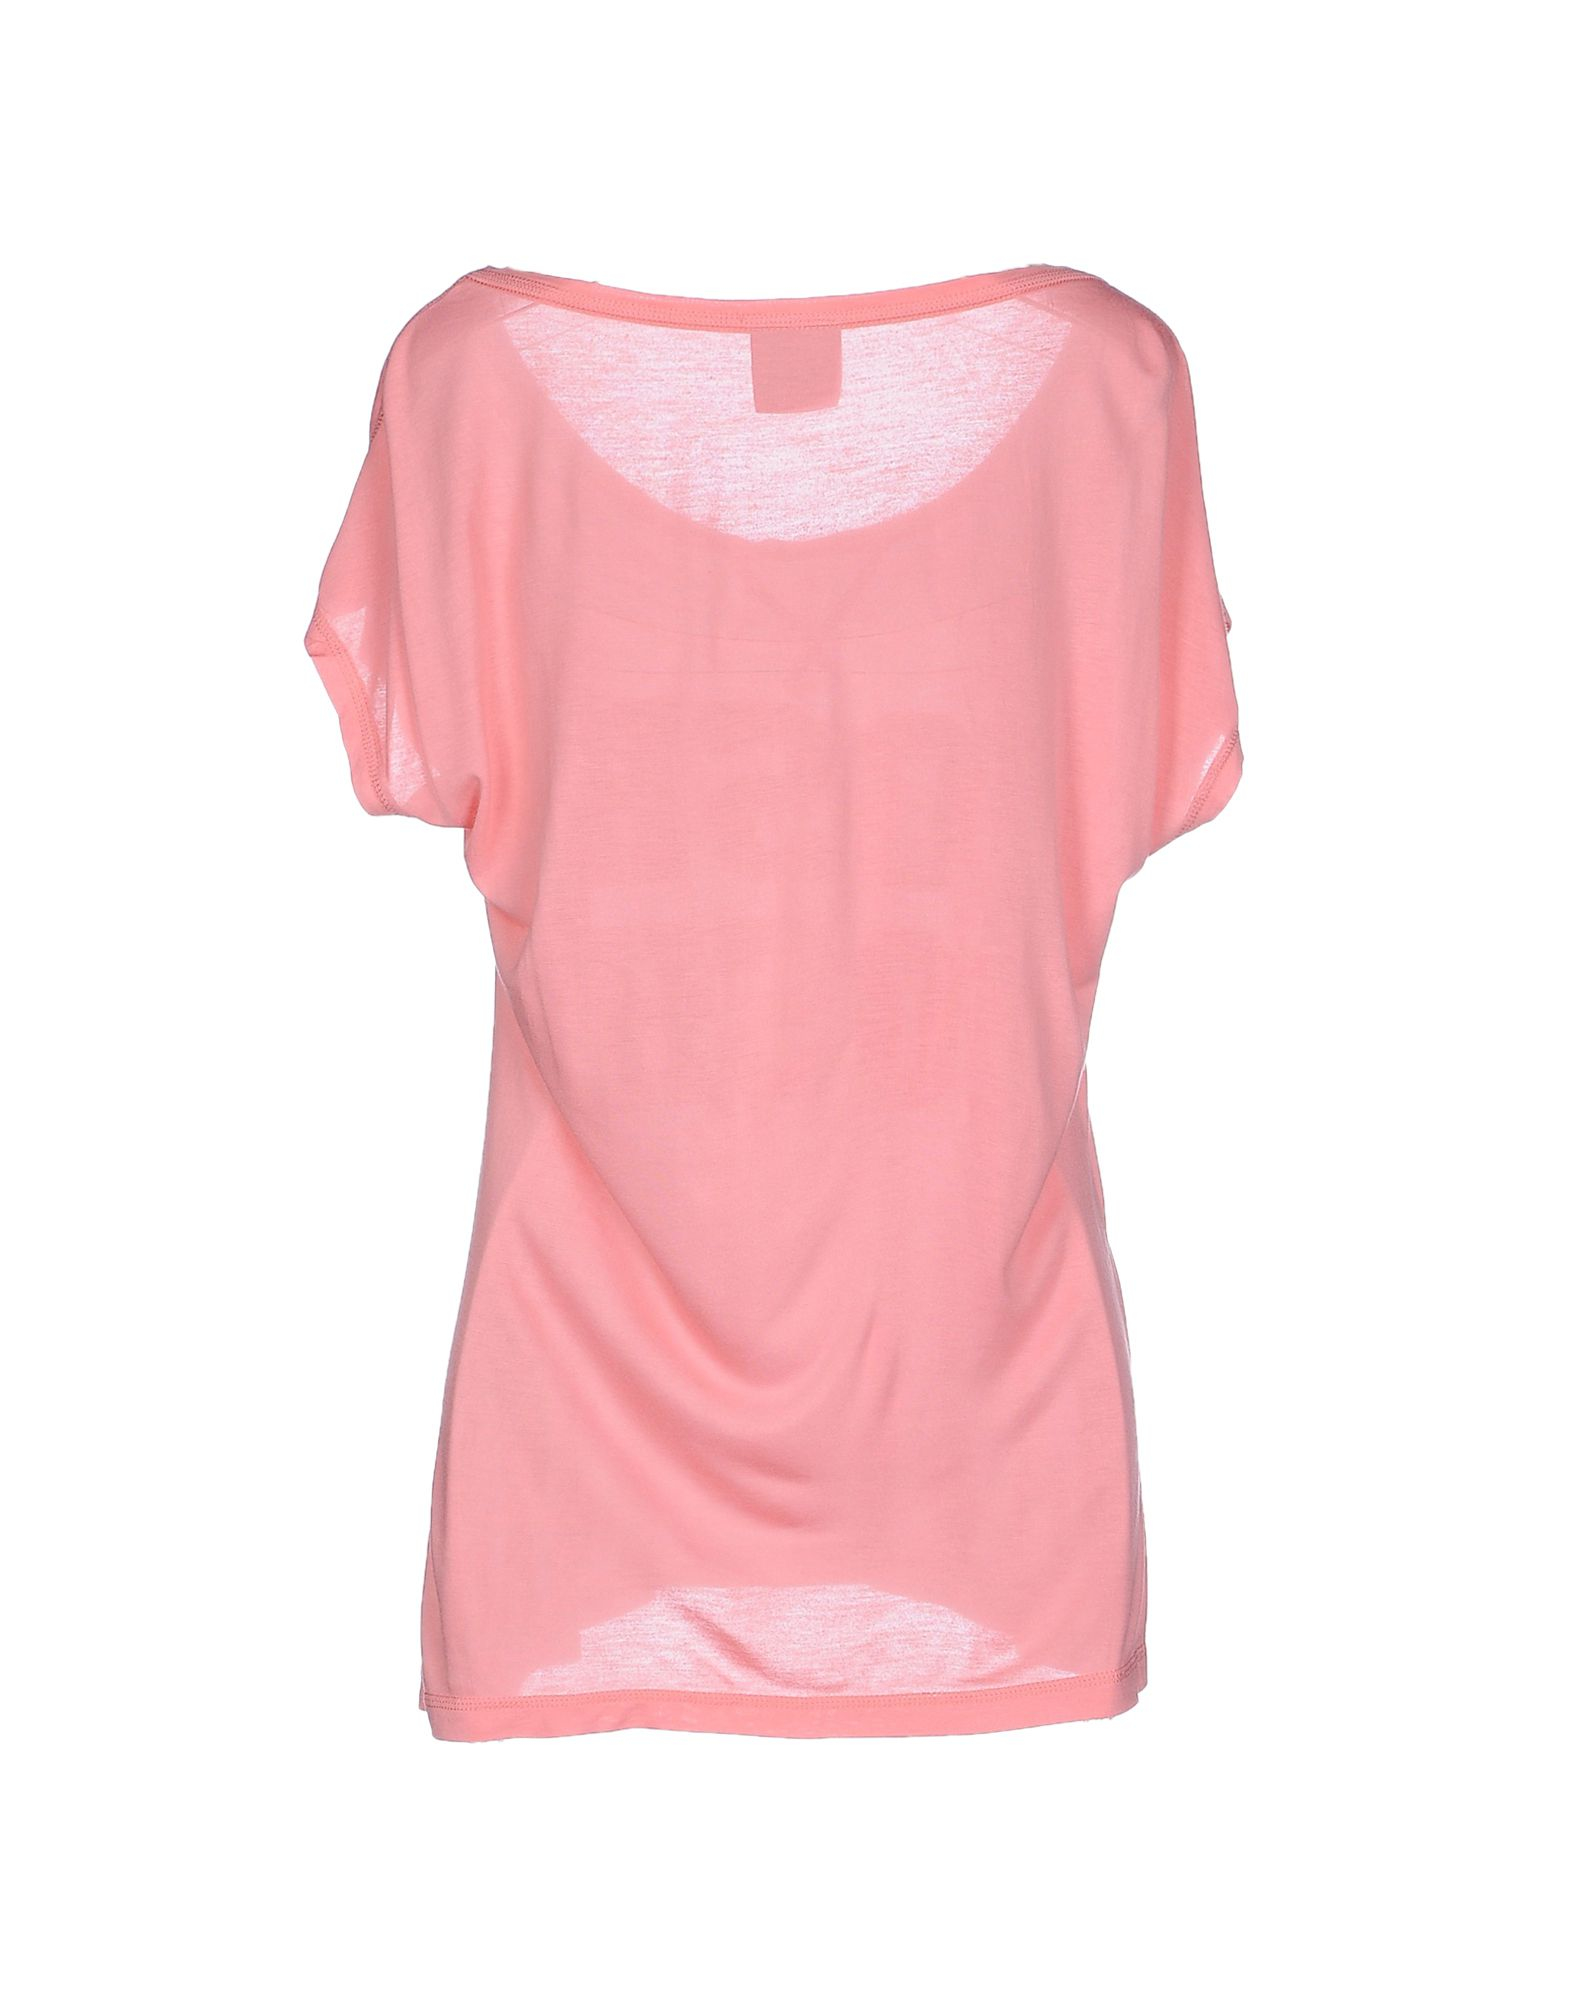 vero moda t shirt in pink lyst. Black Bedroom Furniture Sets. Home Design Ideas